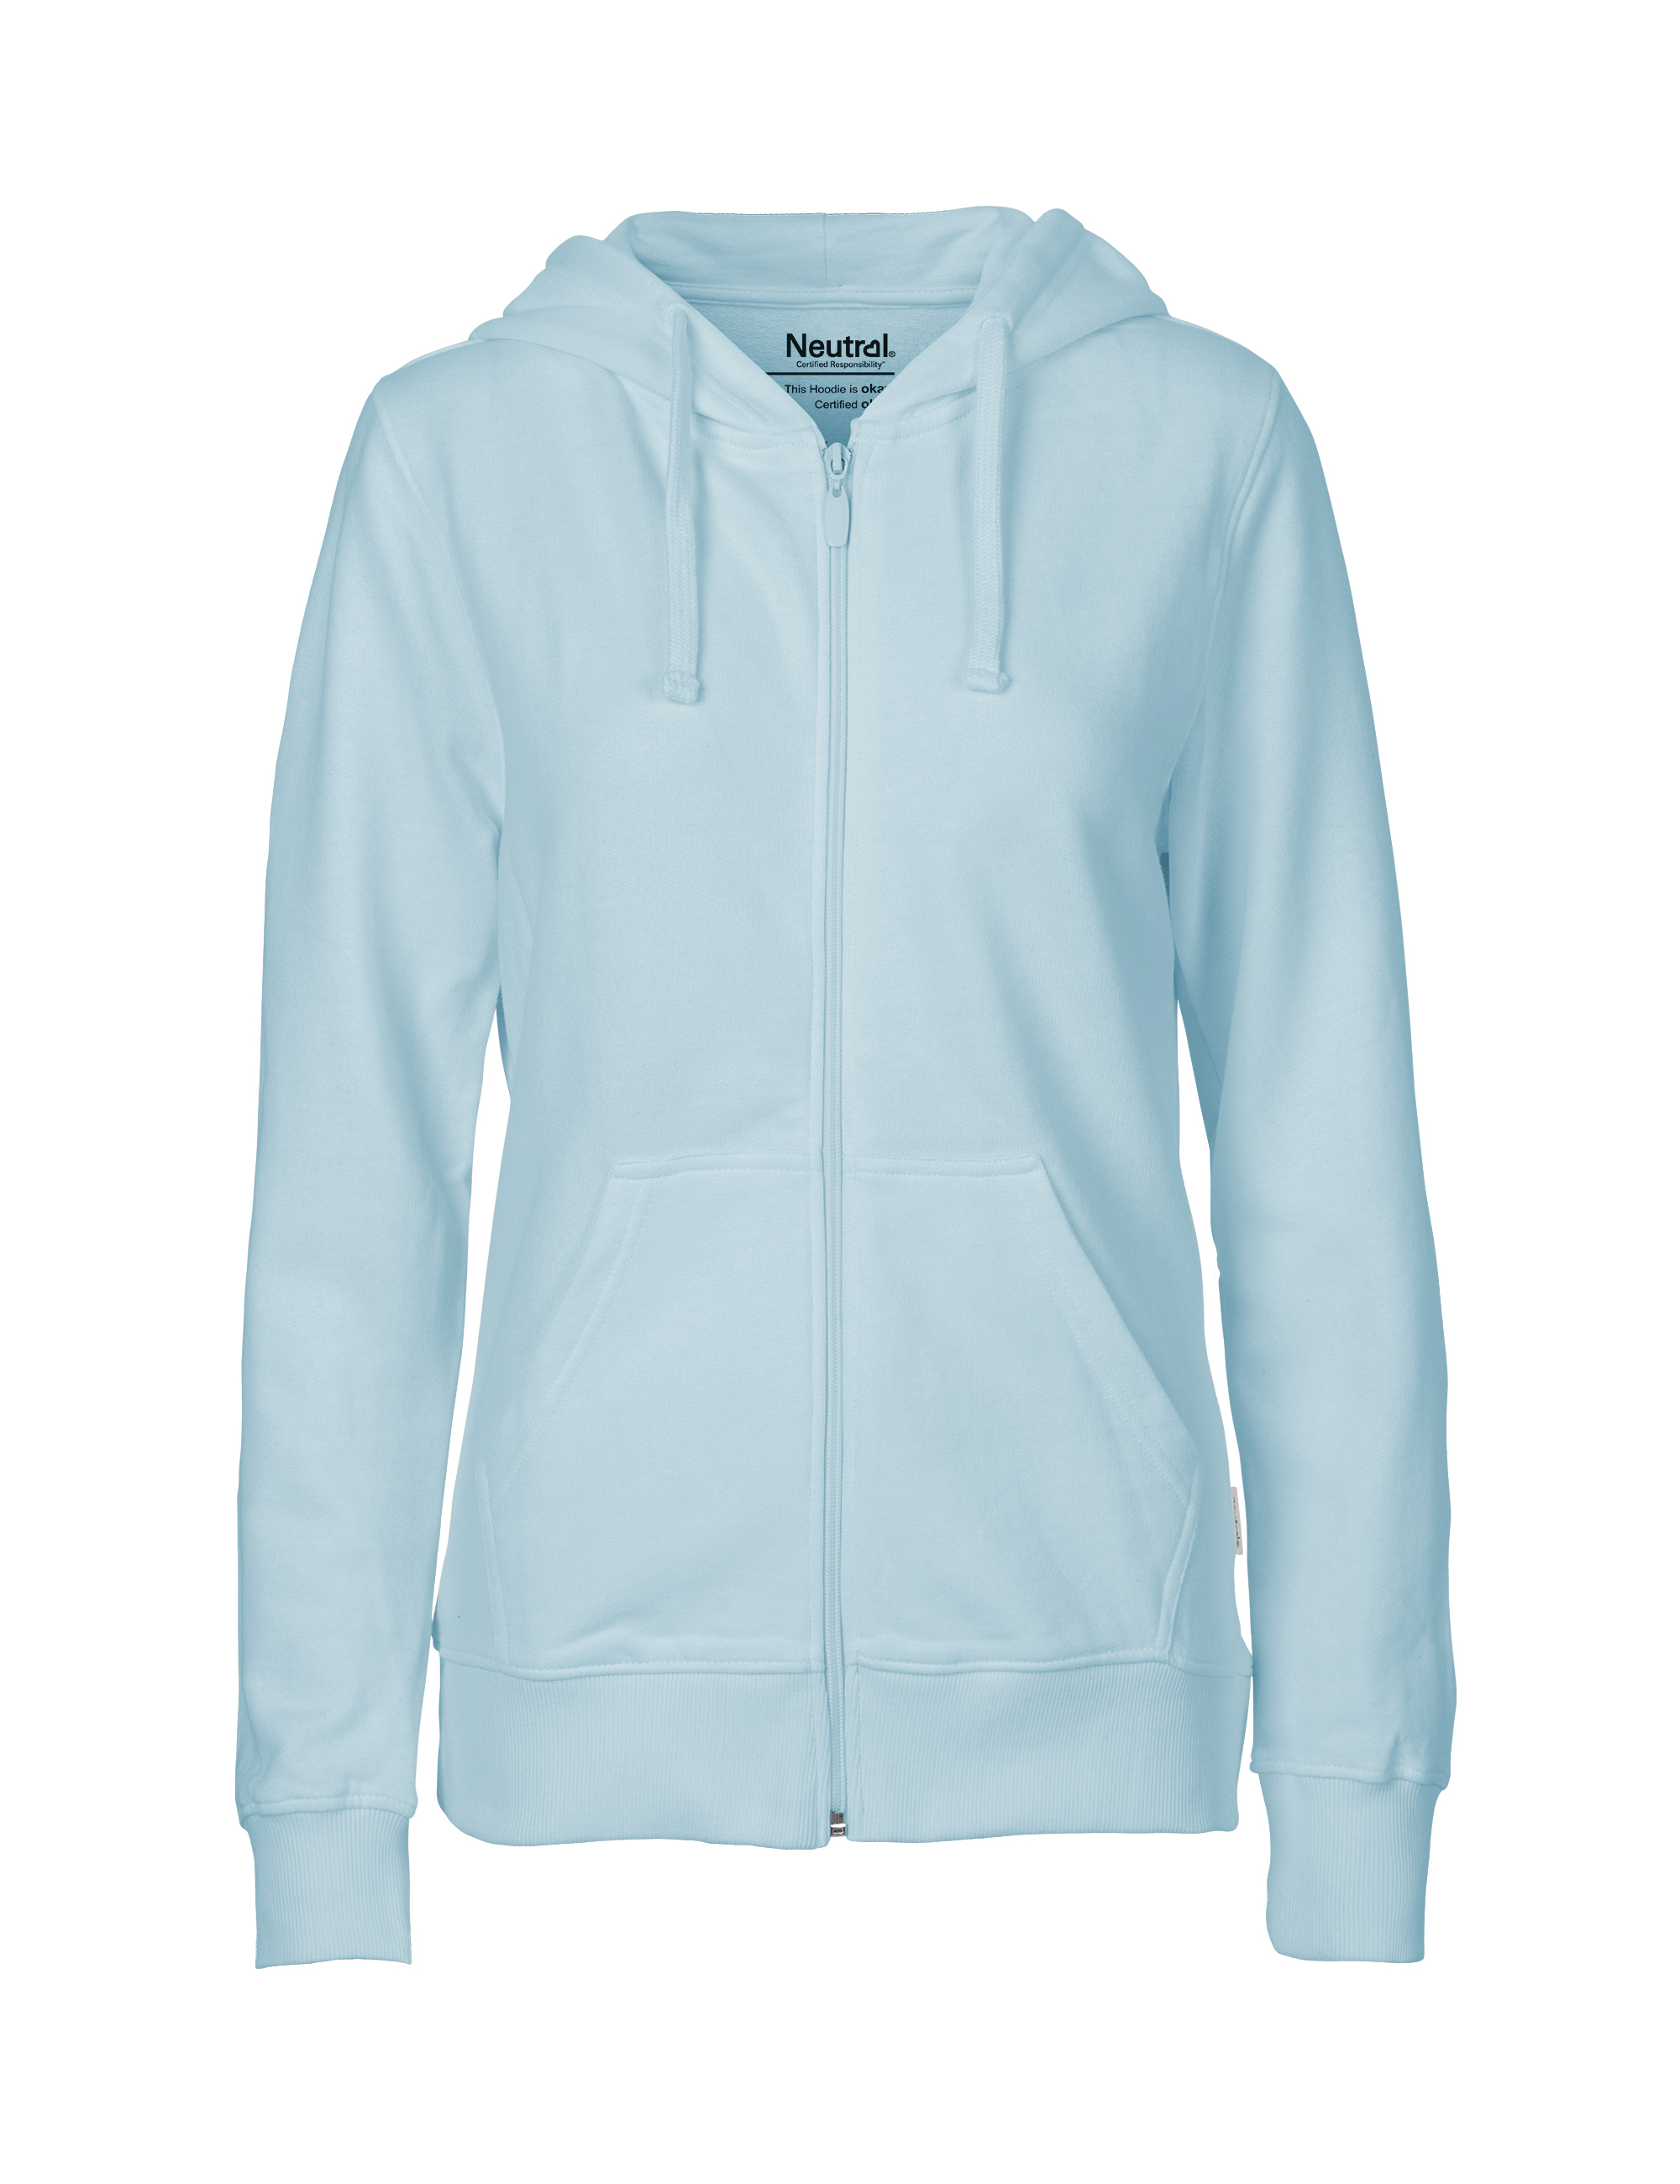 O83301 Ladies Hoodie w. Zip i Light Blue